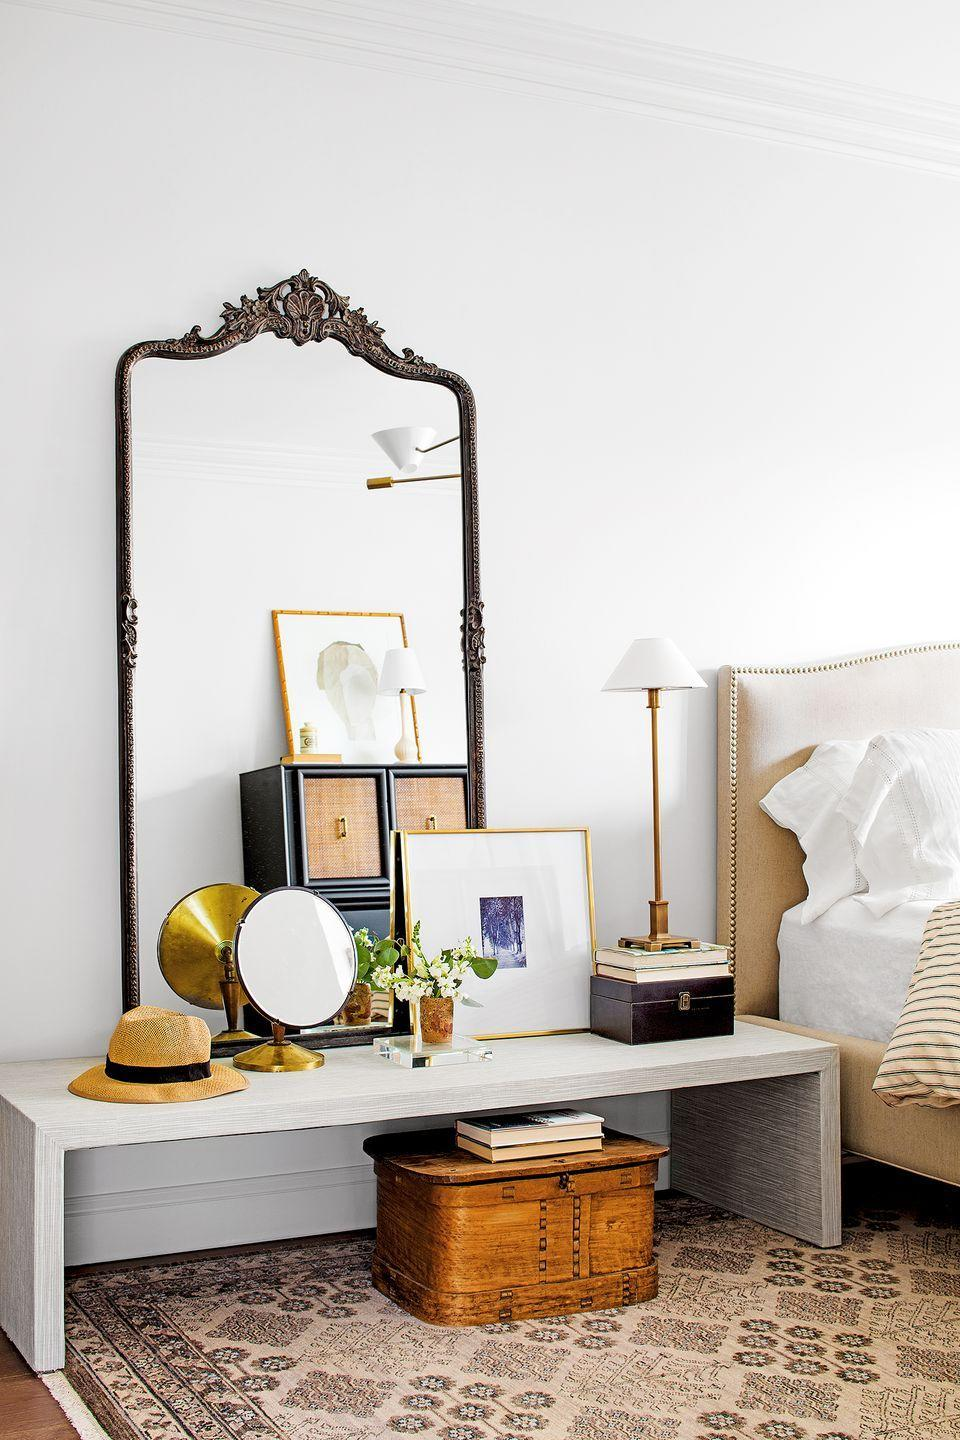 <p>If you love the idea of having both a vanity area and a nightstand, set a console table right next to your bed. Style it with your favorite accessories, including an oversized mirror, table lamp, and framed art.</p>